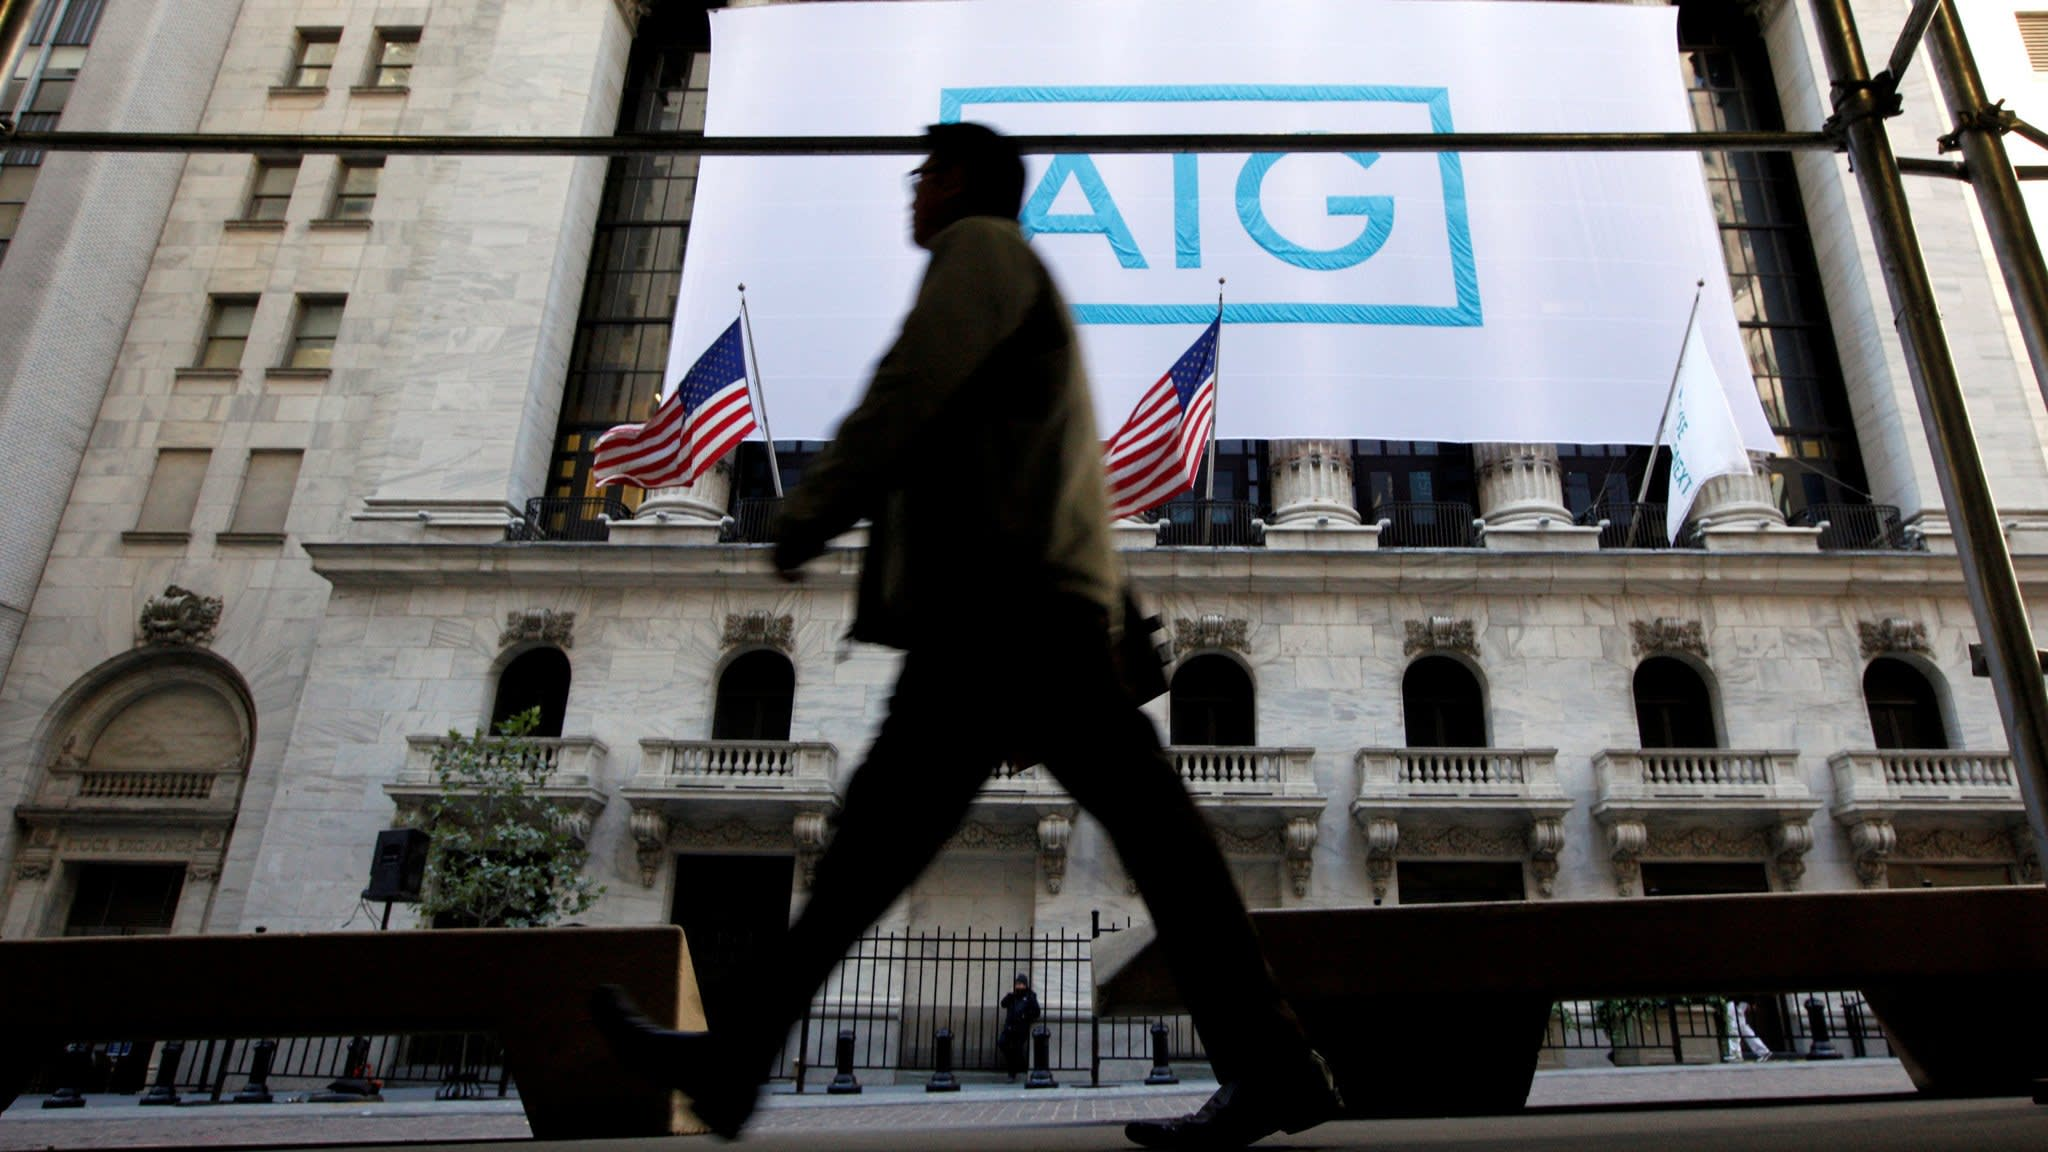 AIG hit by investment and underwriting weakness